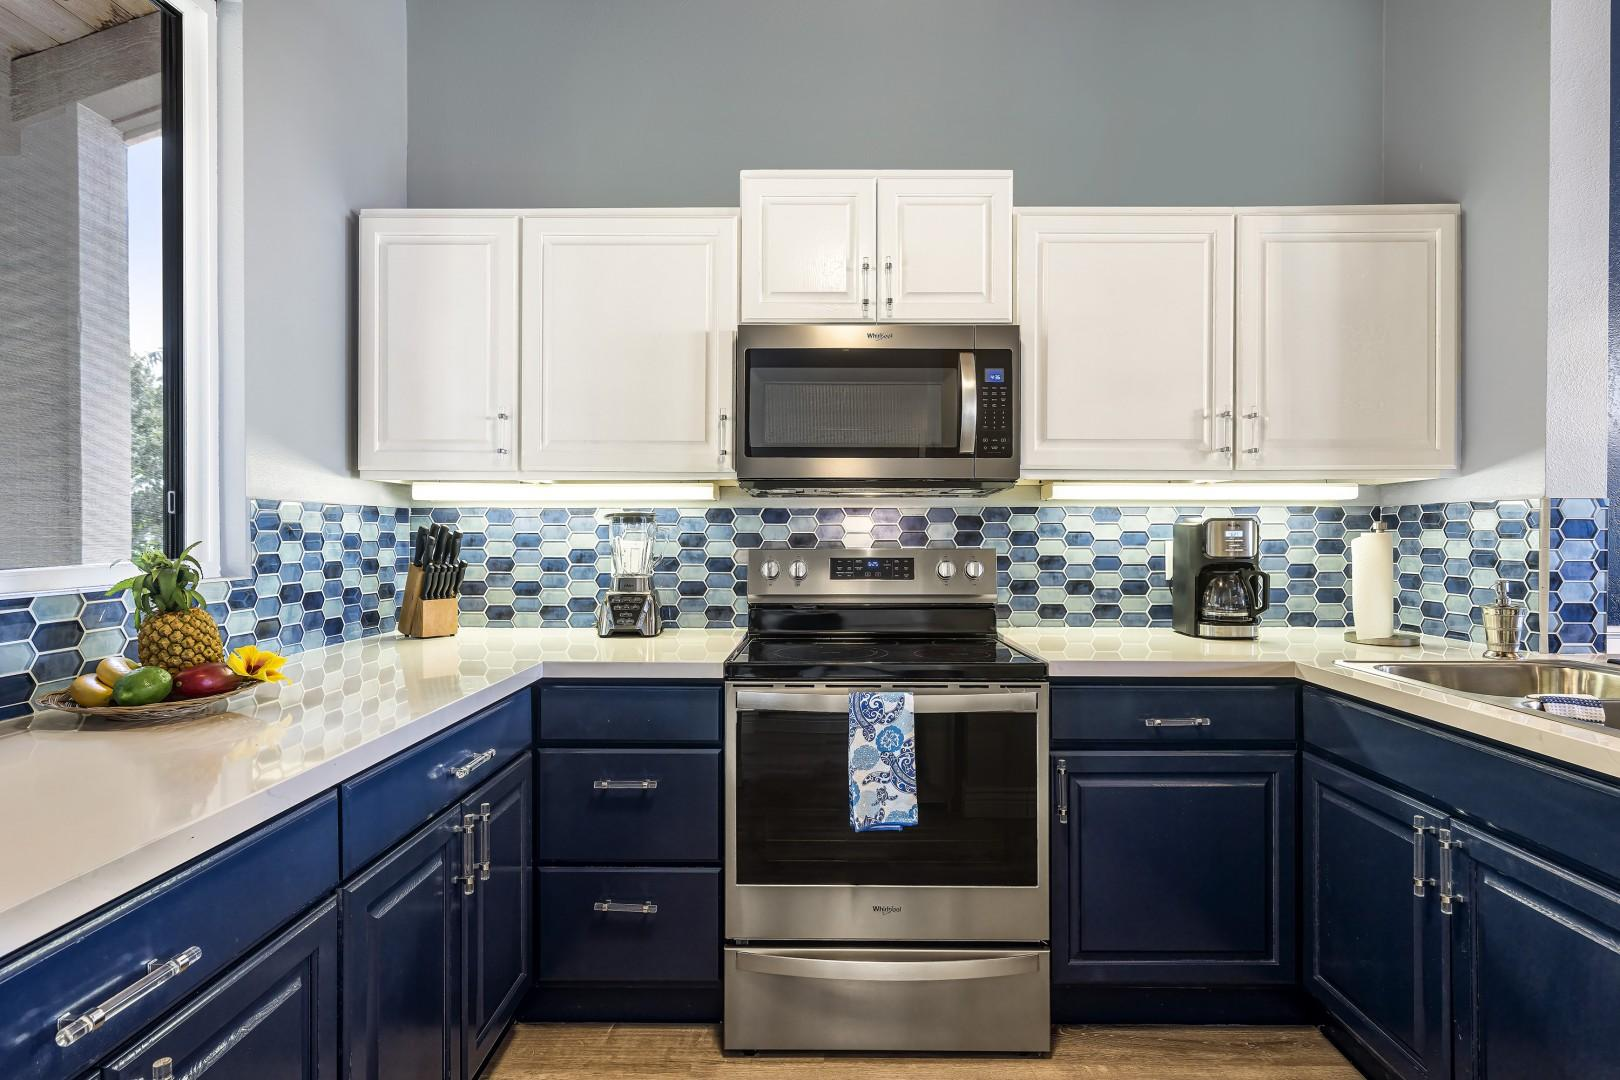 Upgraded kitchen with everything you could need to prepare your favorite meals while in Hawaii!